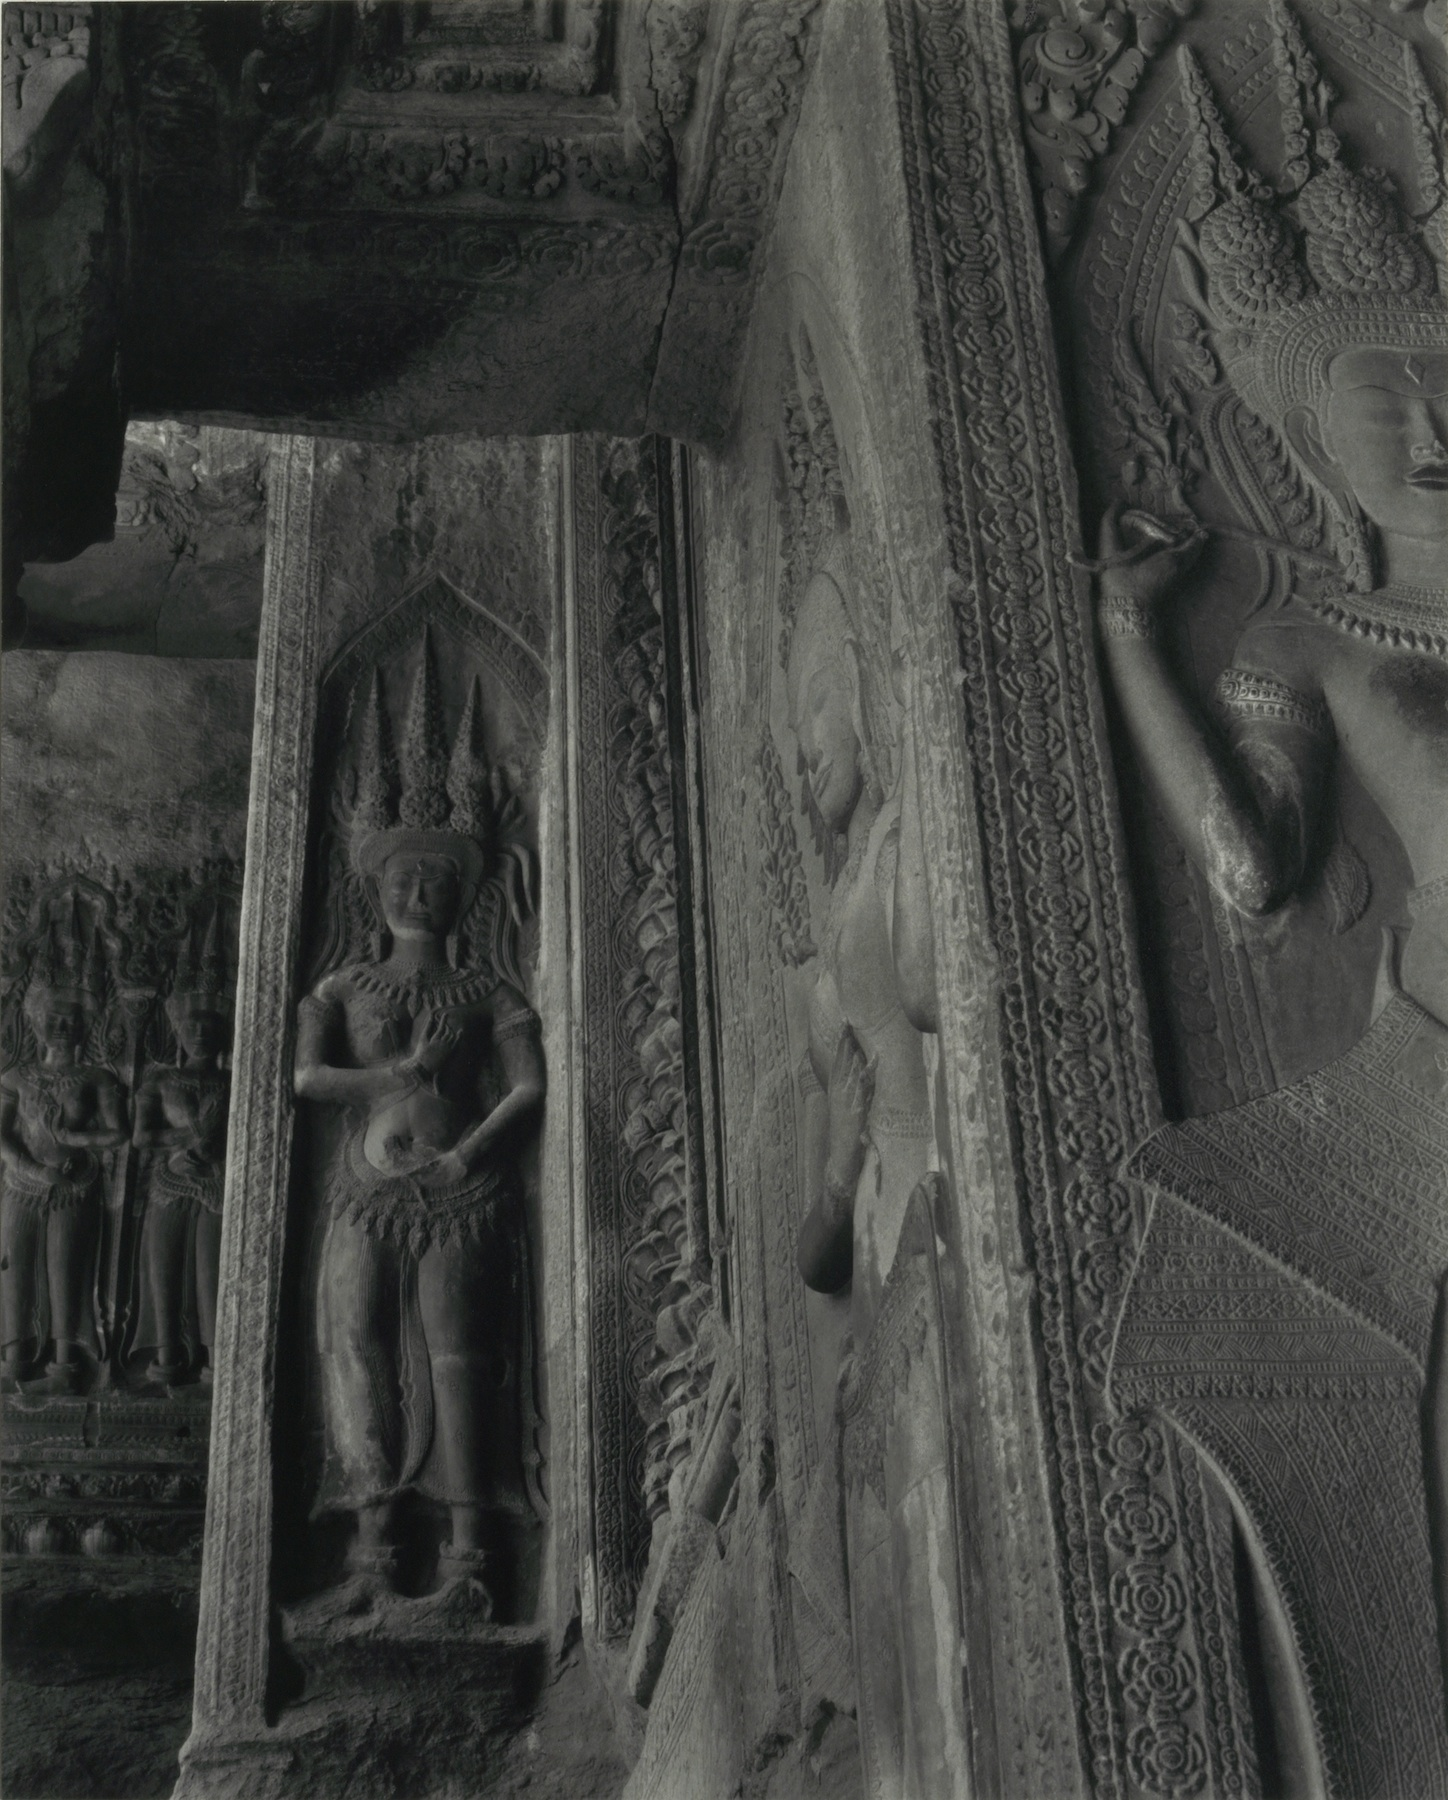 Five Apsara